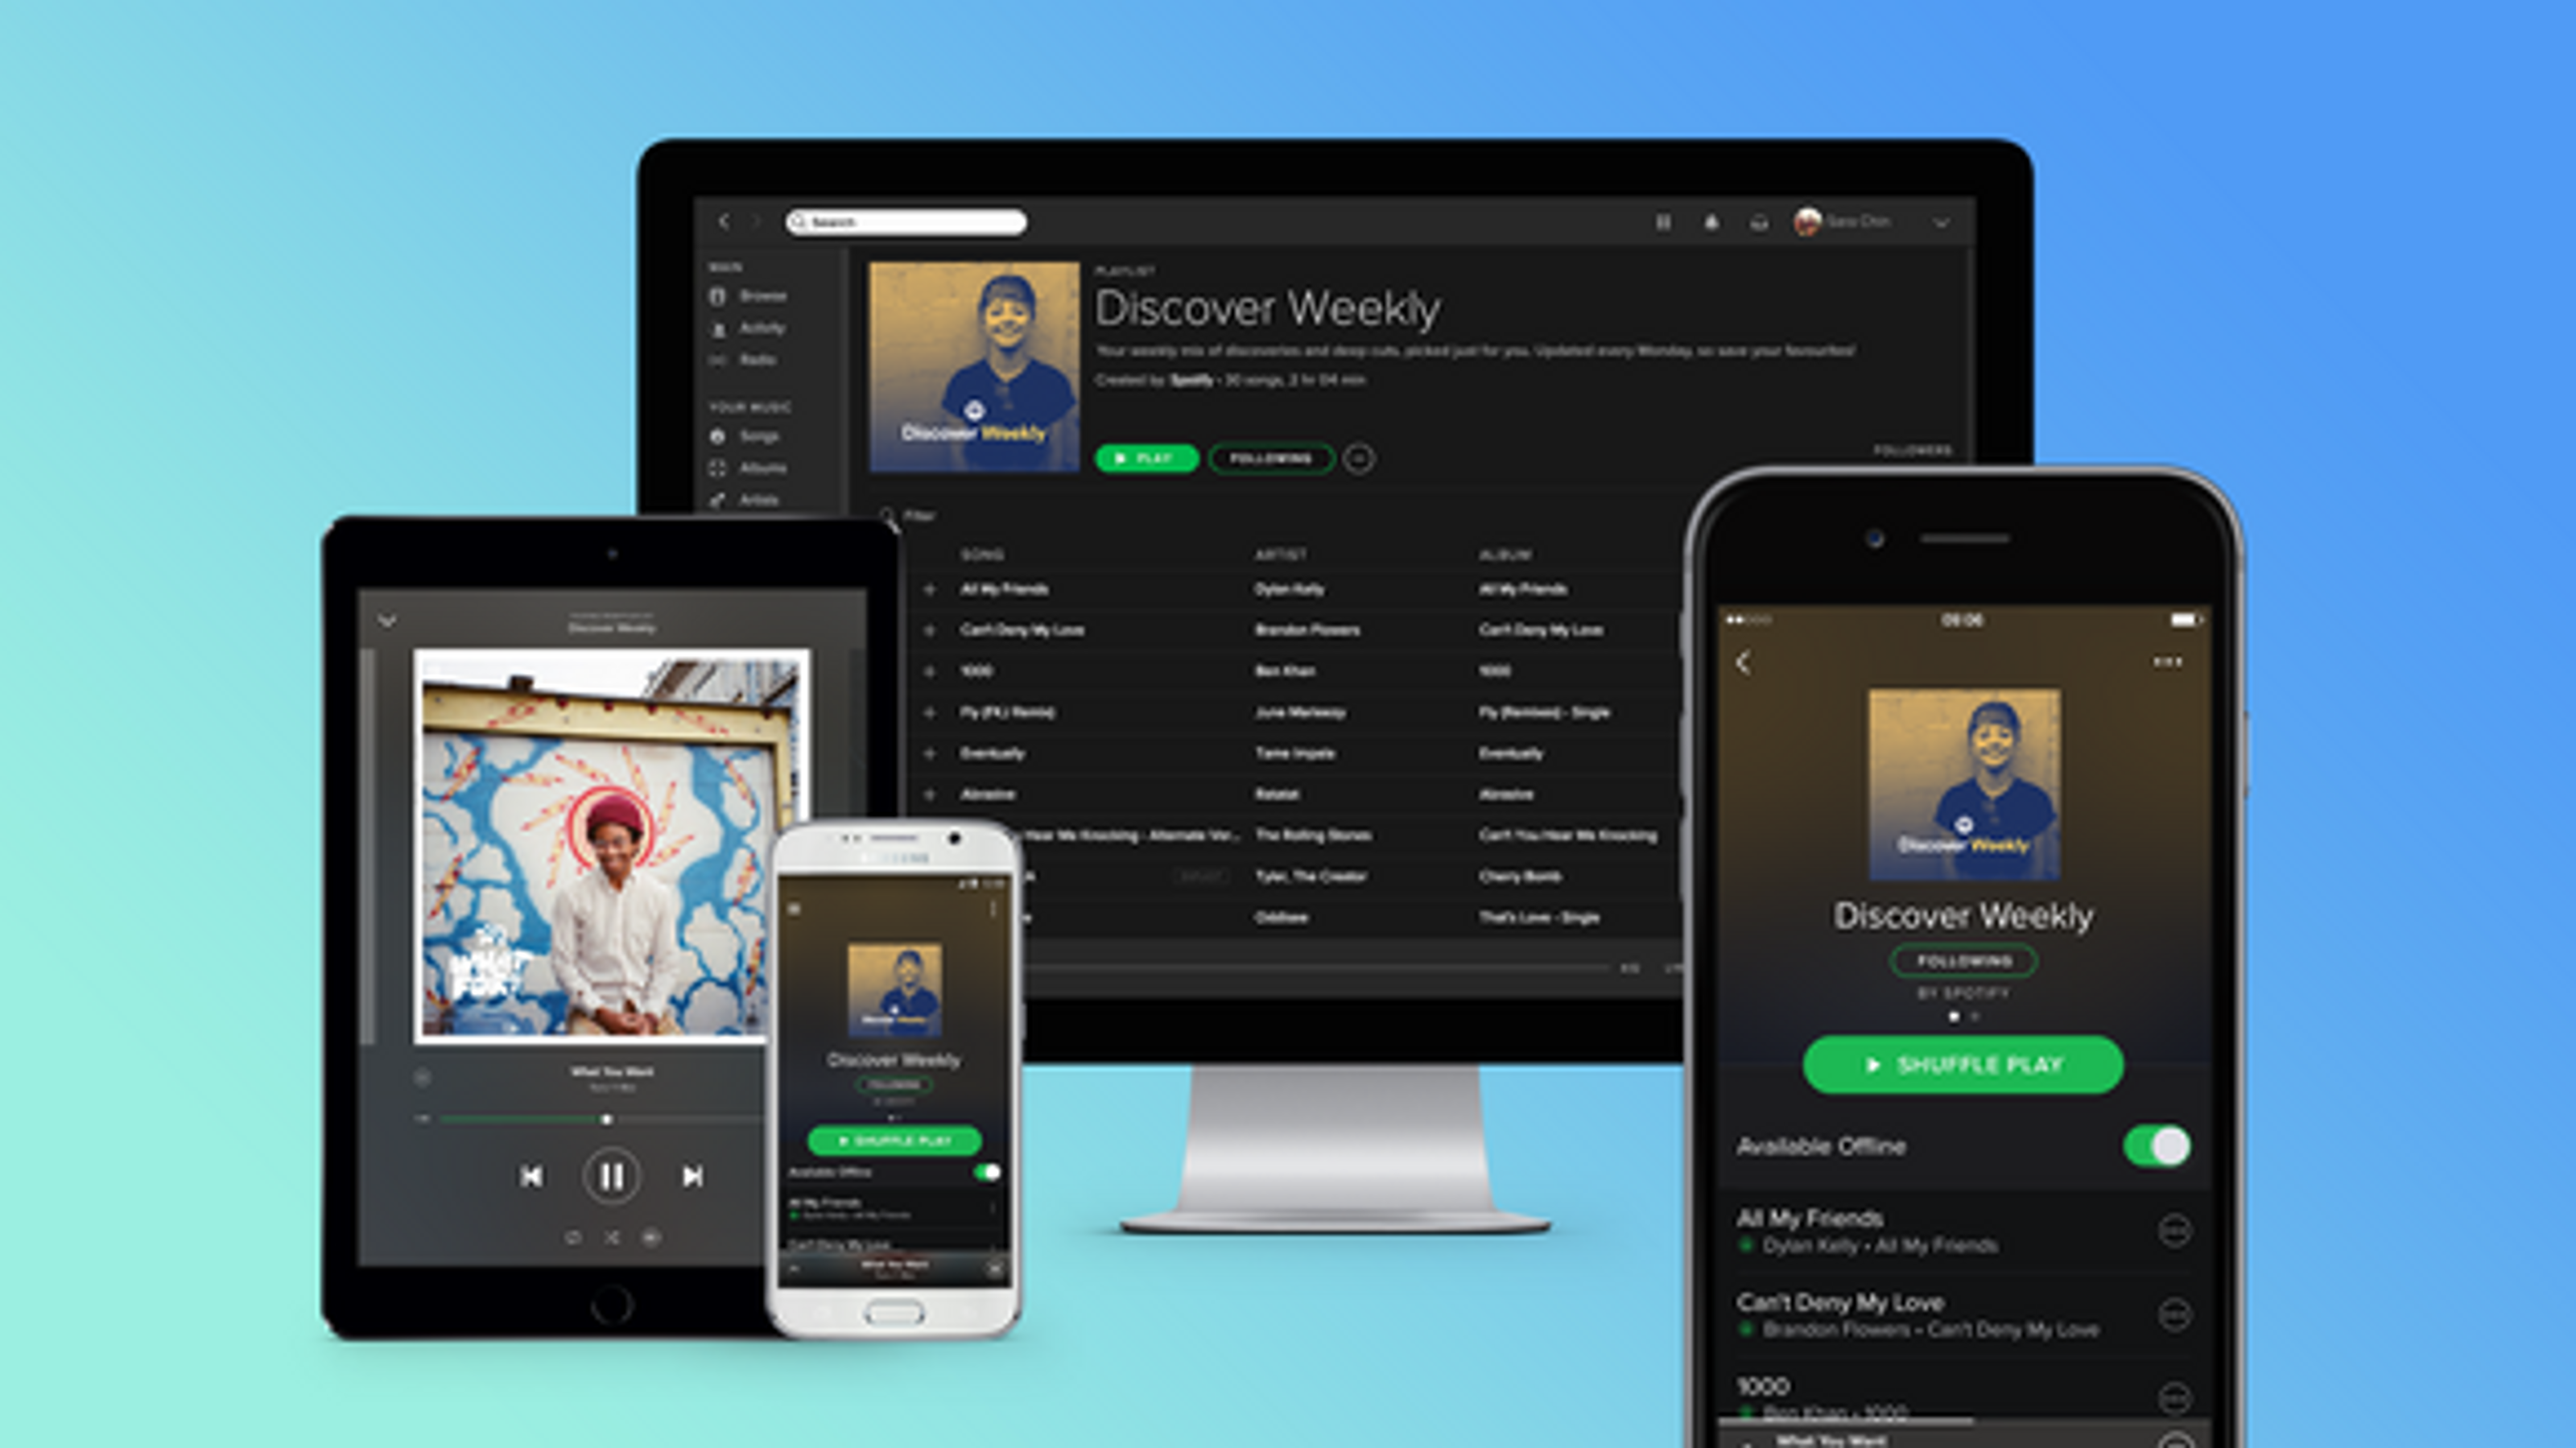 What you do on Spotify is public and can be used against